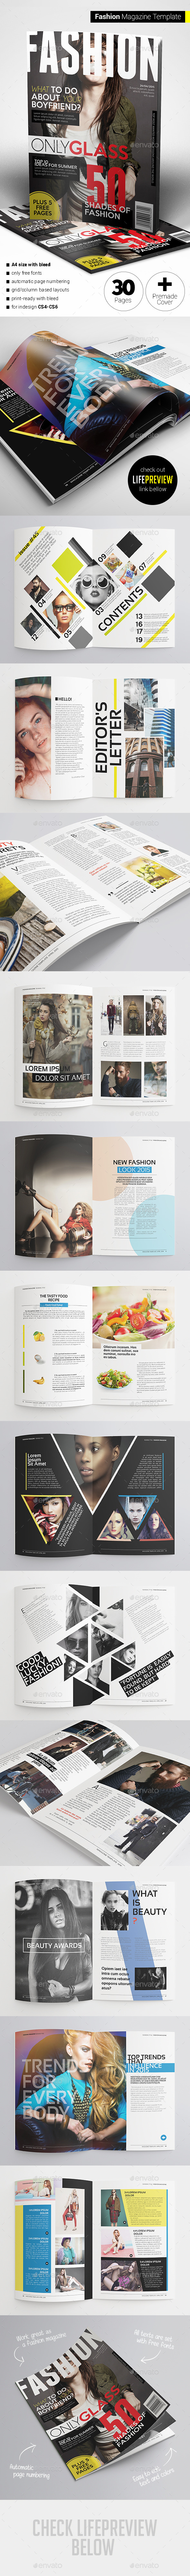 GraphicRiver Fashion Magazine 11274321